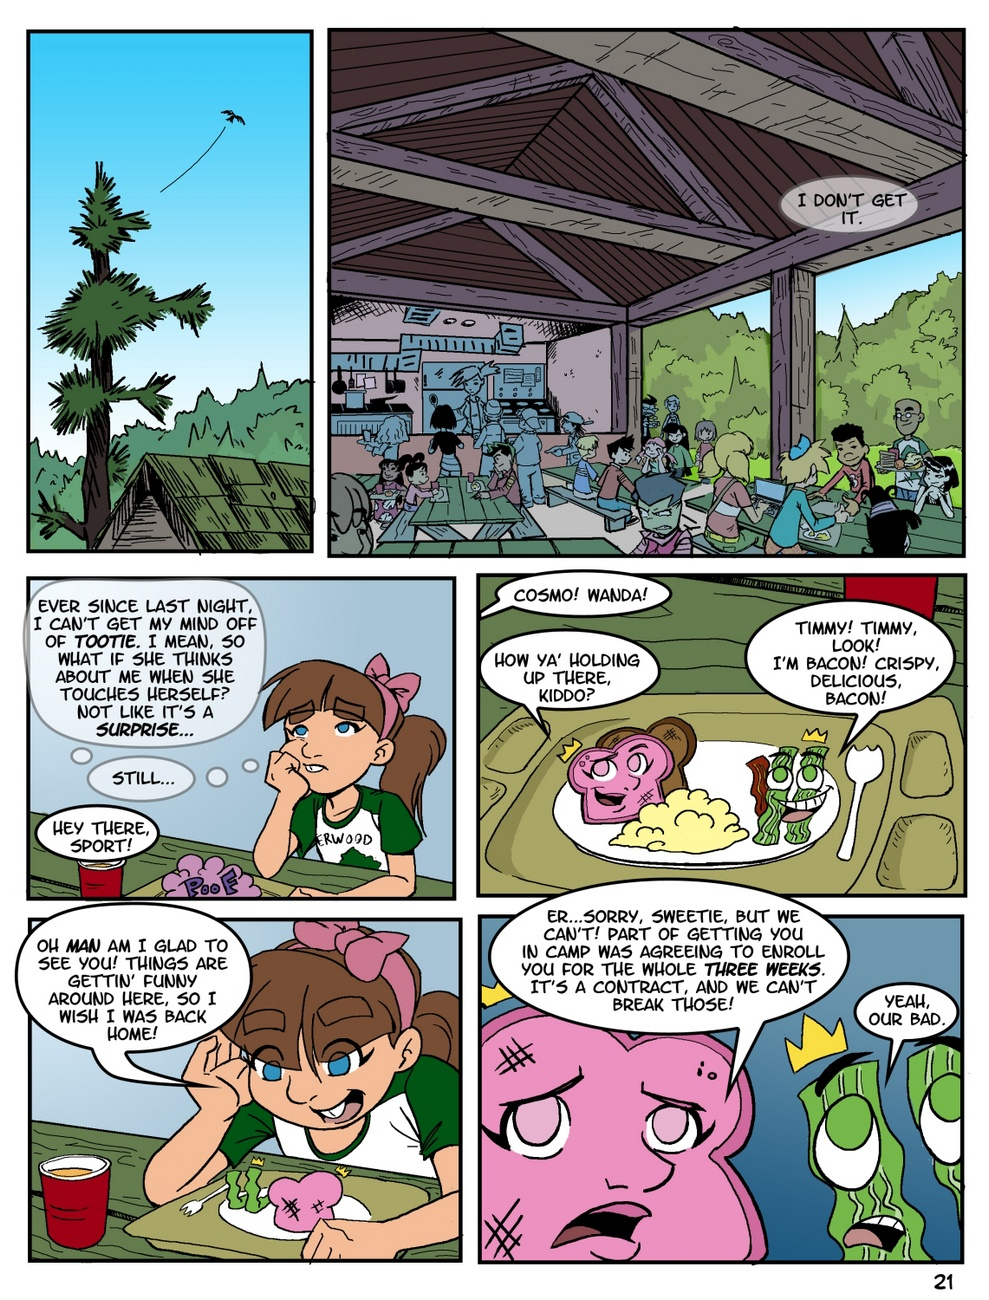 Camp Sherwood [Mr.D] (Ongoing) - part 2